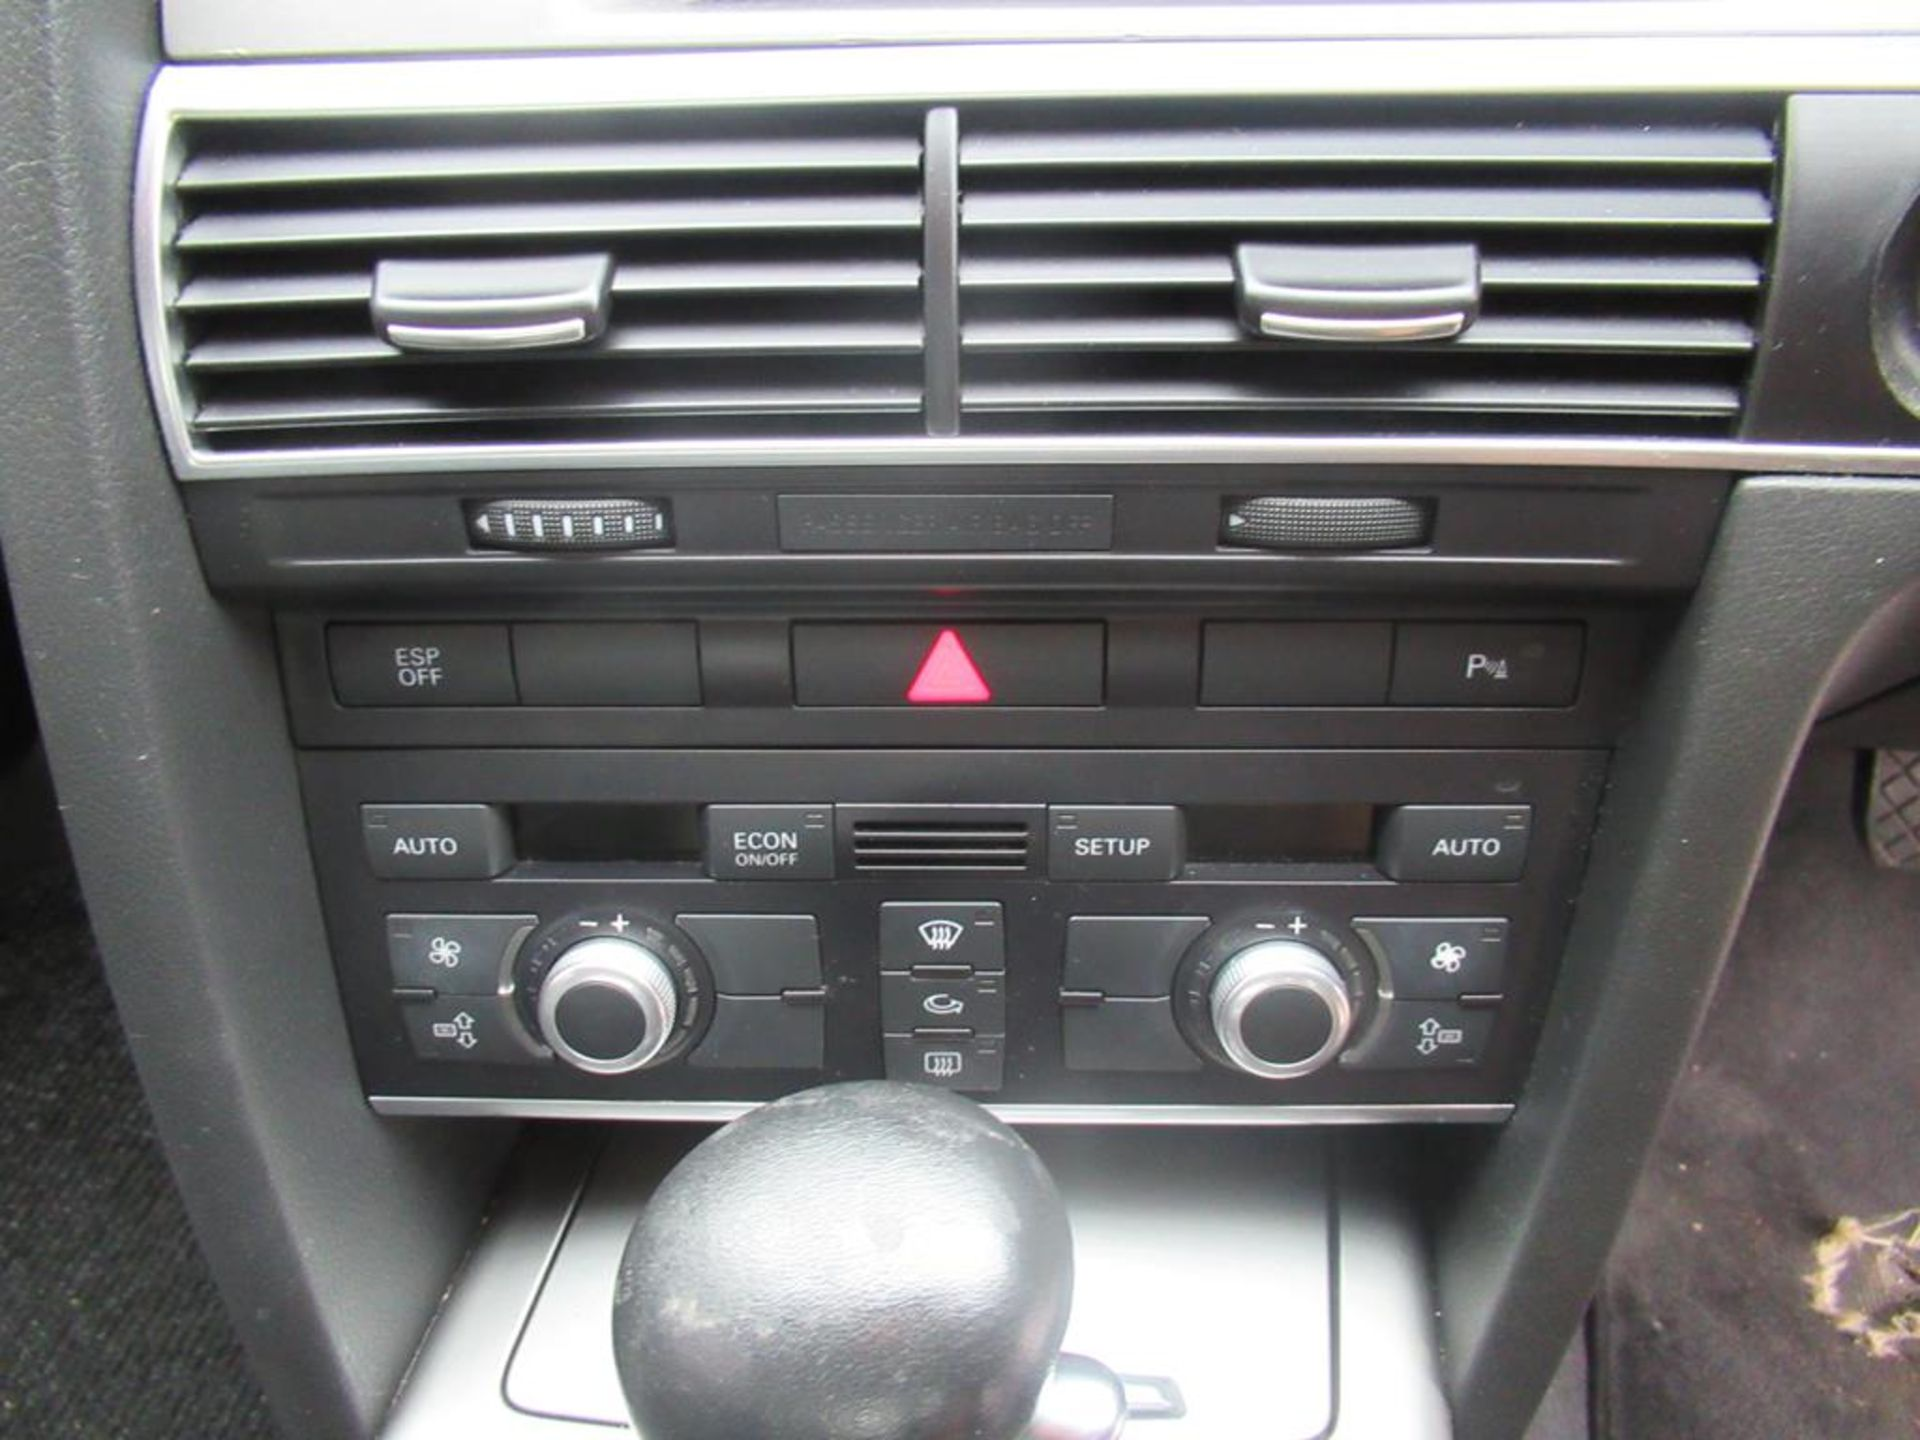 Audi A6 2.7TDI automatic with SatNav and bluetooth - Image 14 of 16